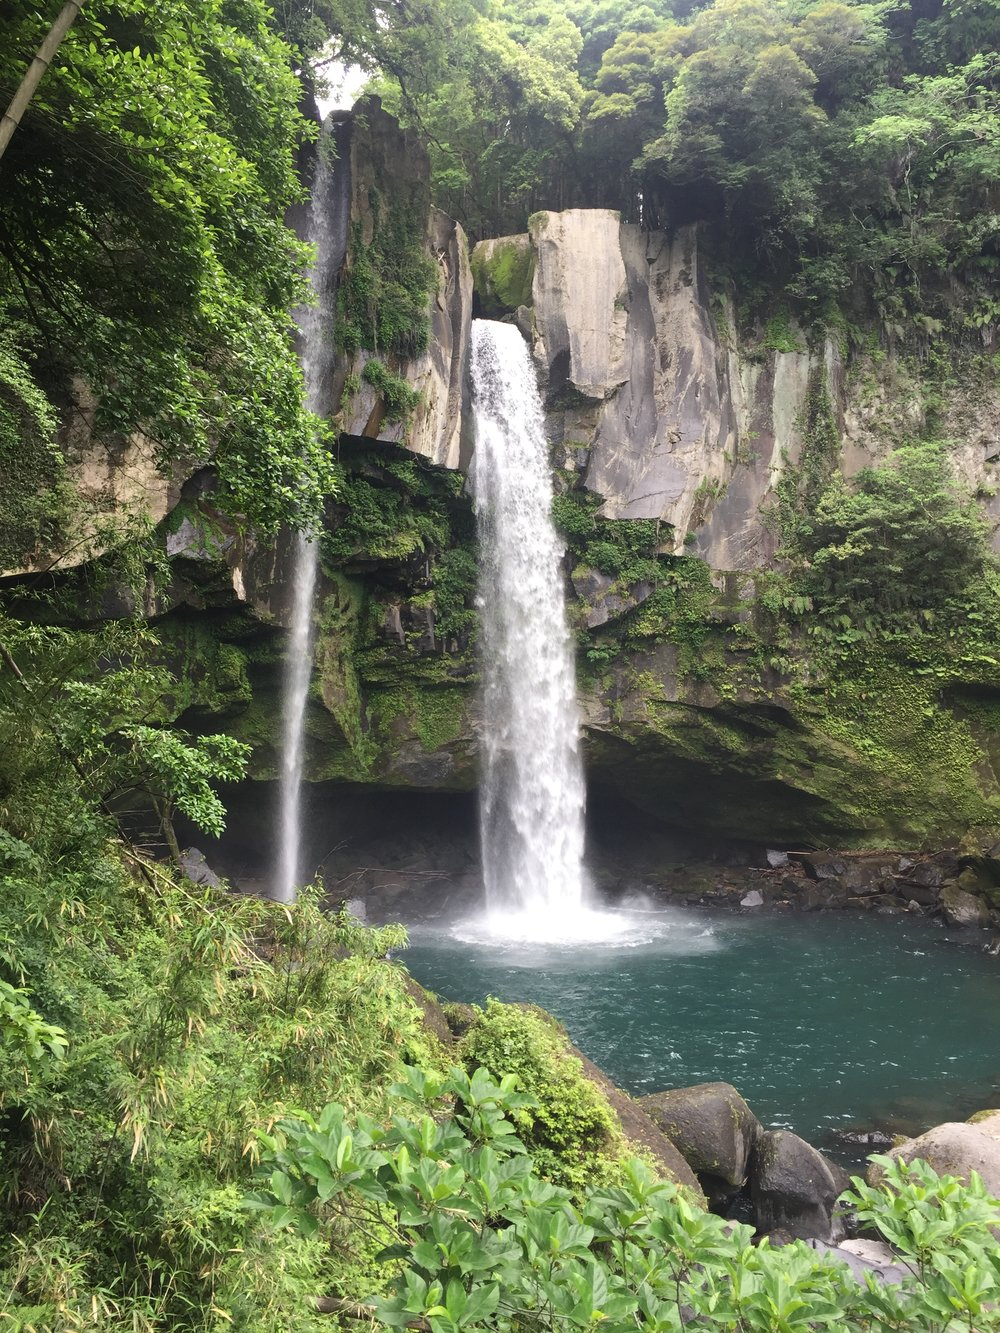 Inukai Waterfall